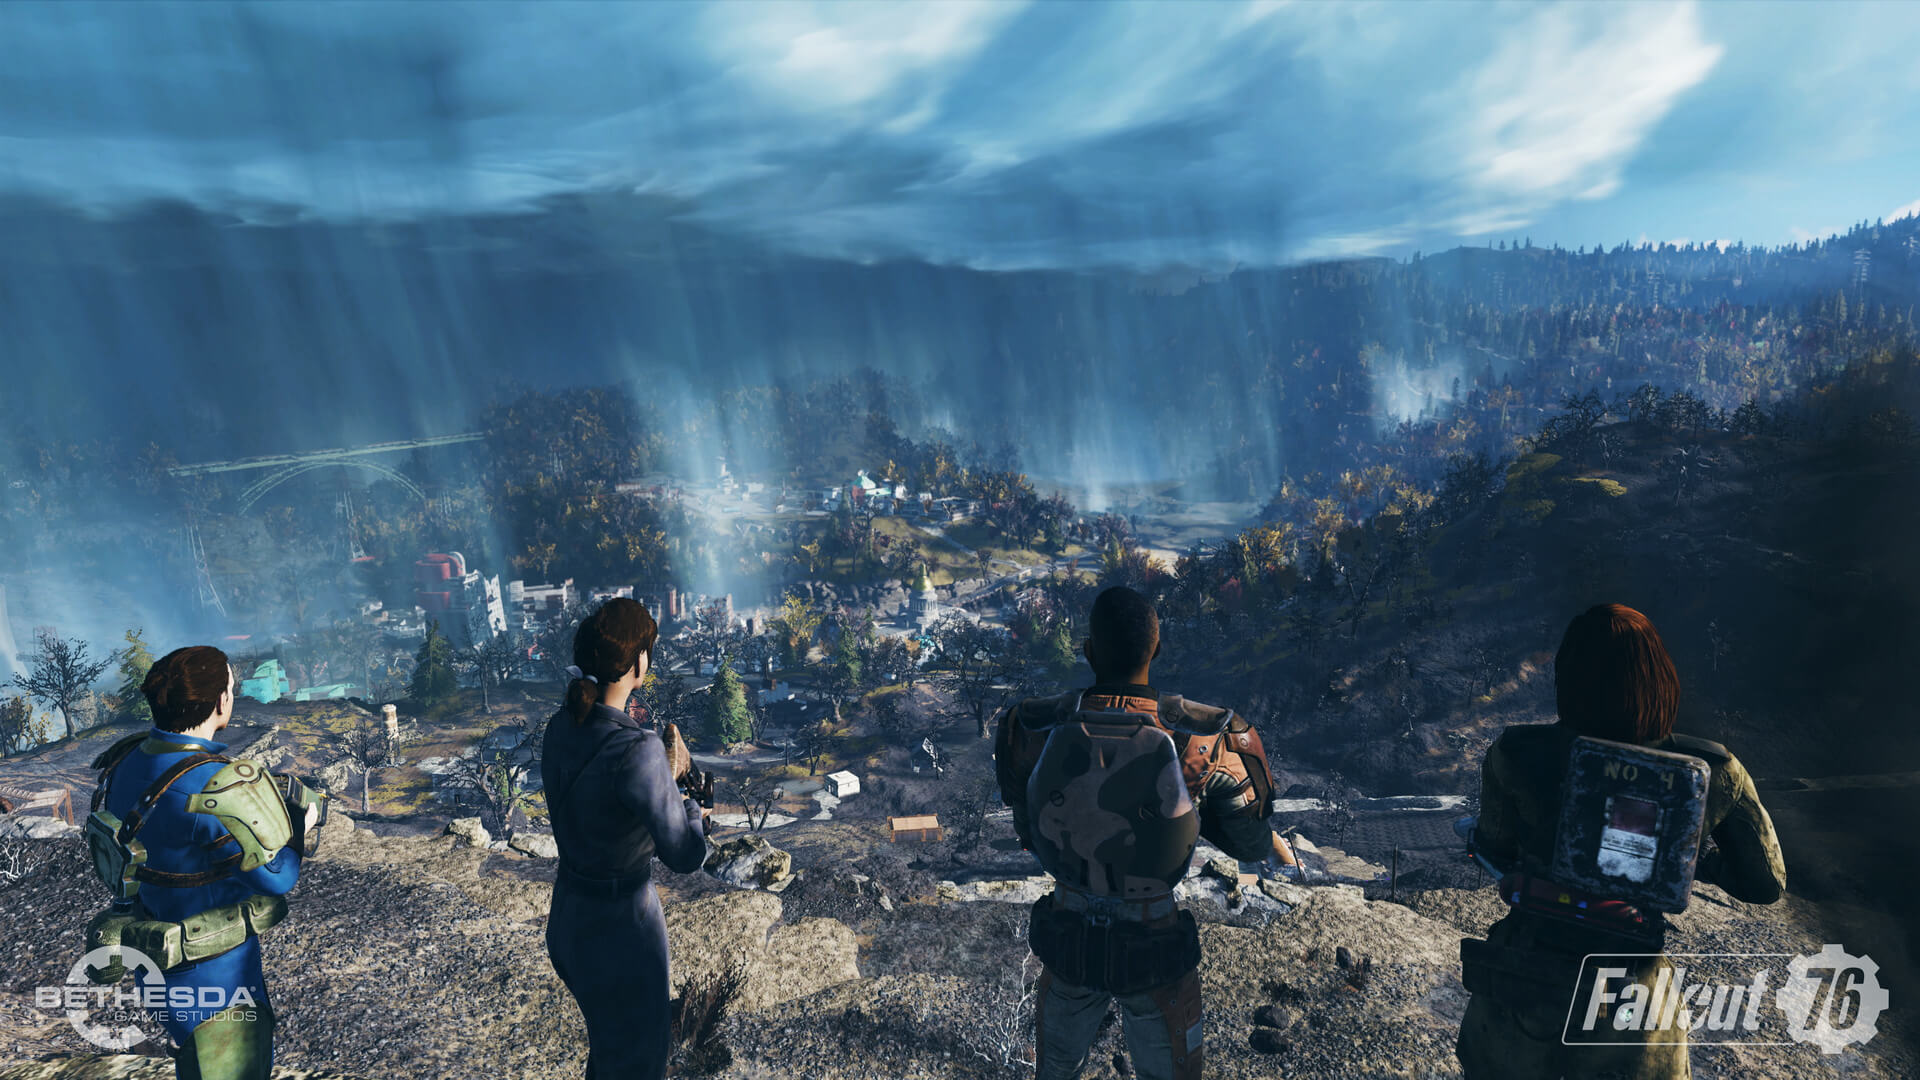 Fallout 76 update 13 released, is 1 5GB in size, brings new